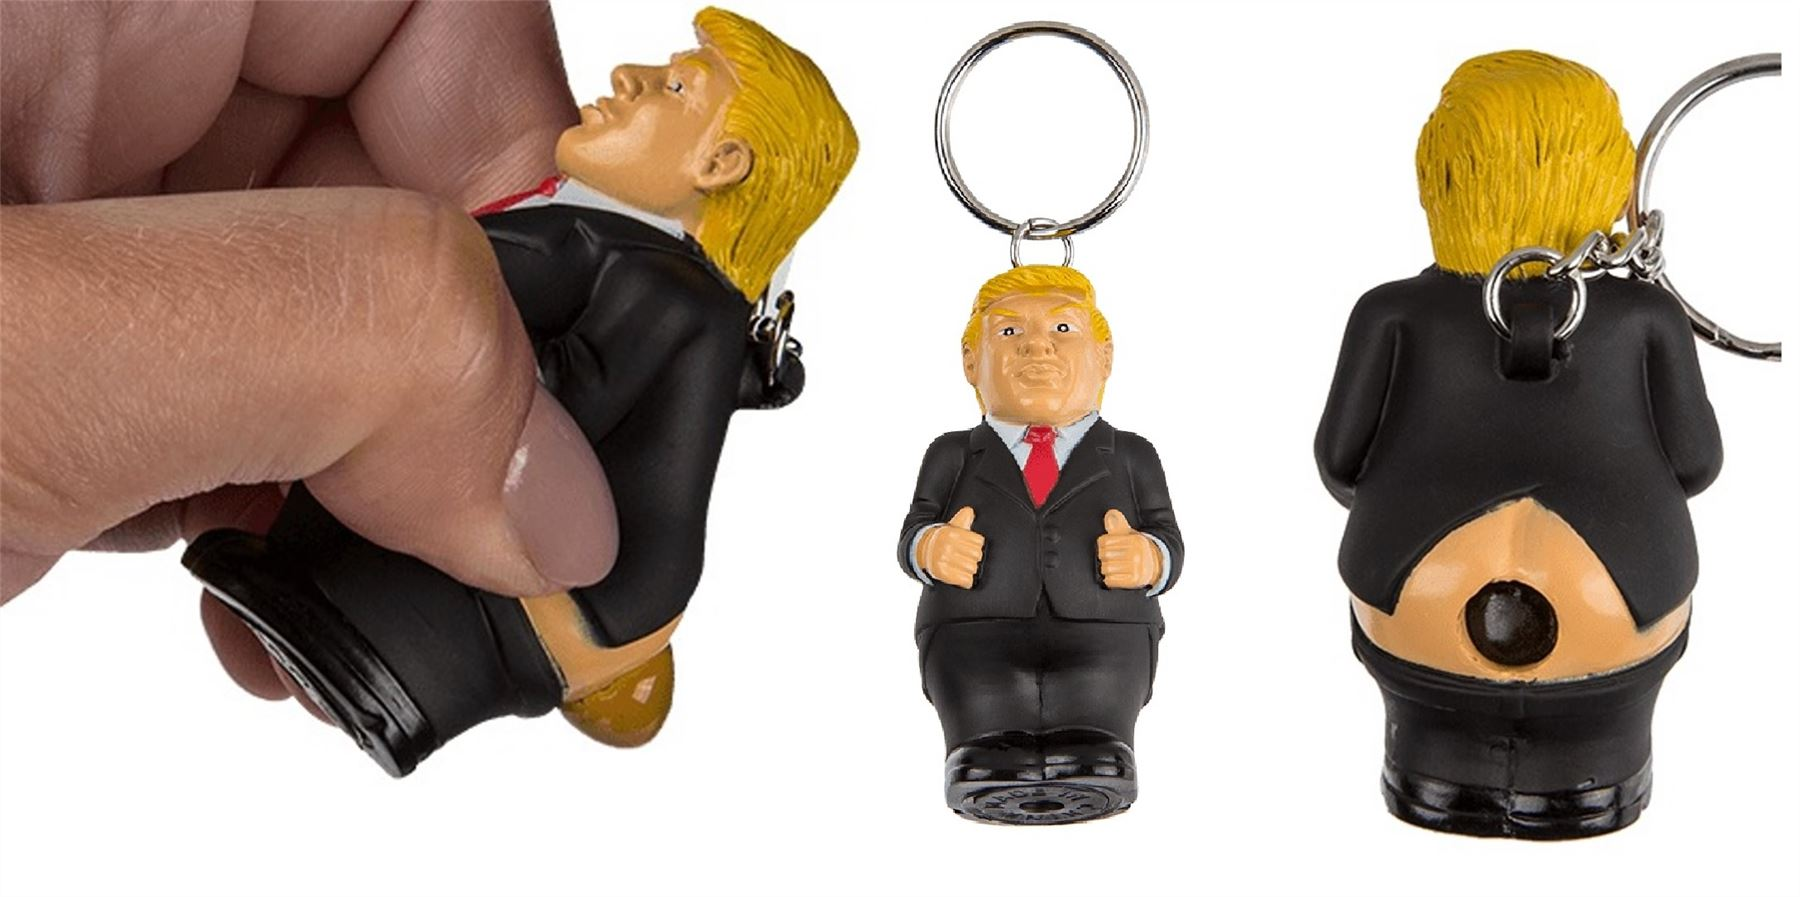 Details about Donald Trump poop keyring president squeeze funny key chain  novelty fun 90e49f873